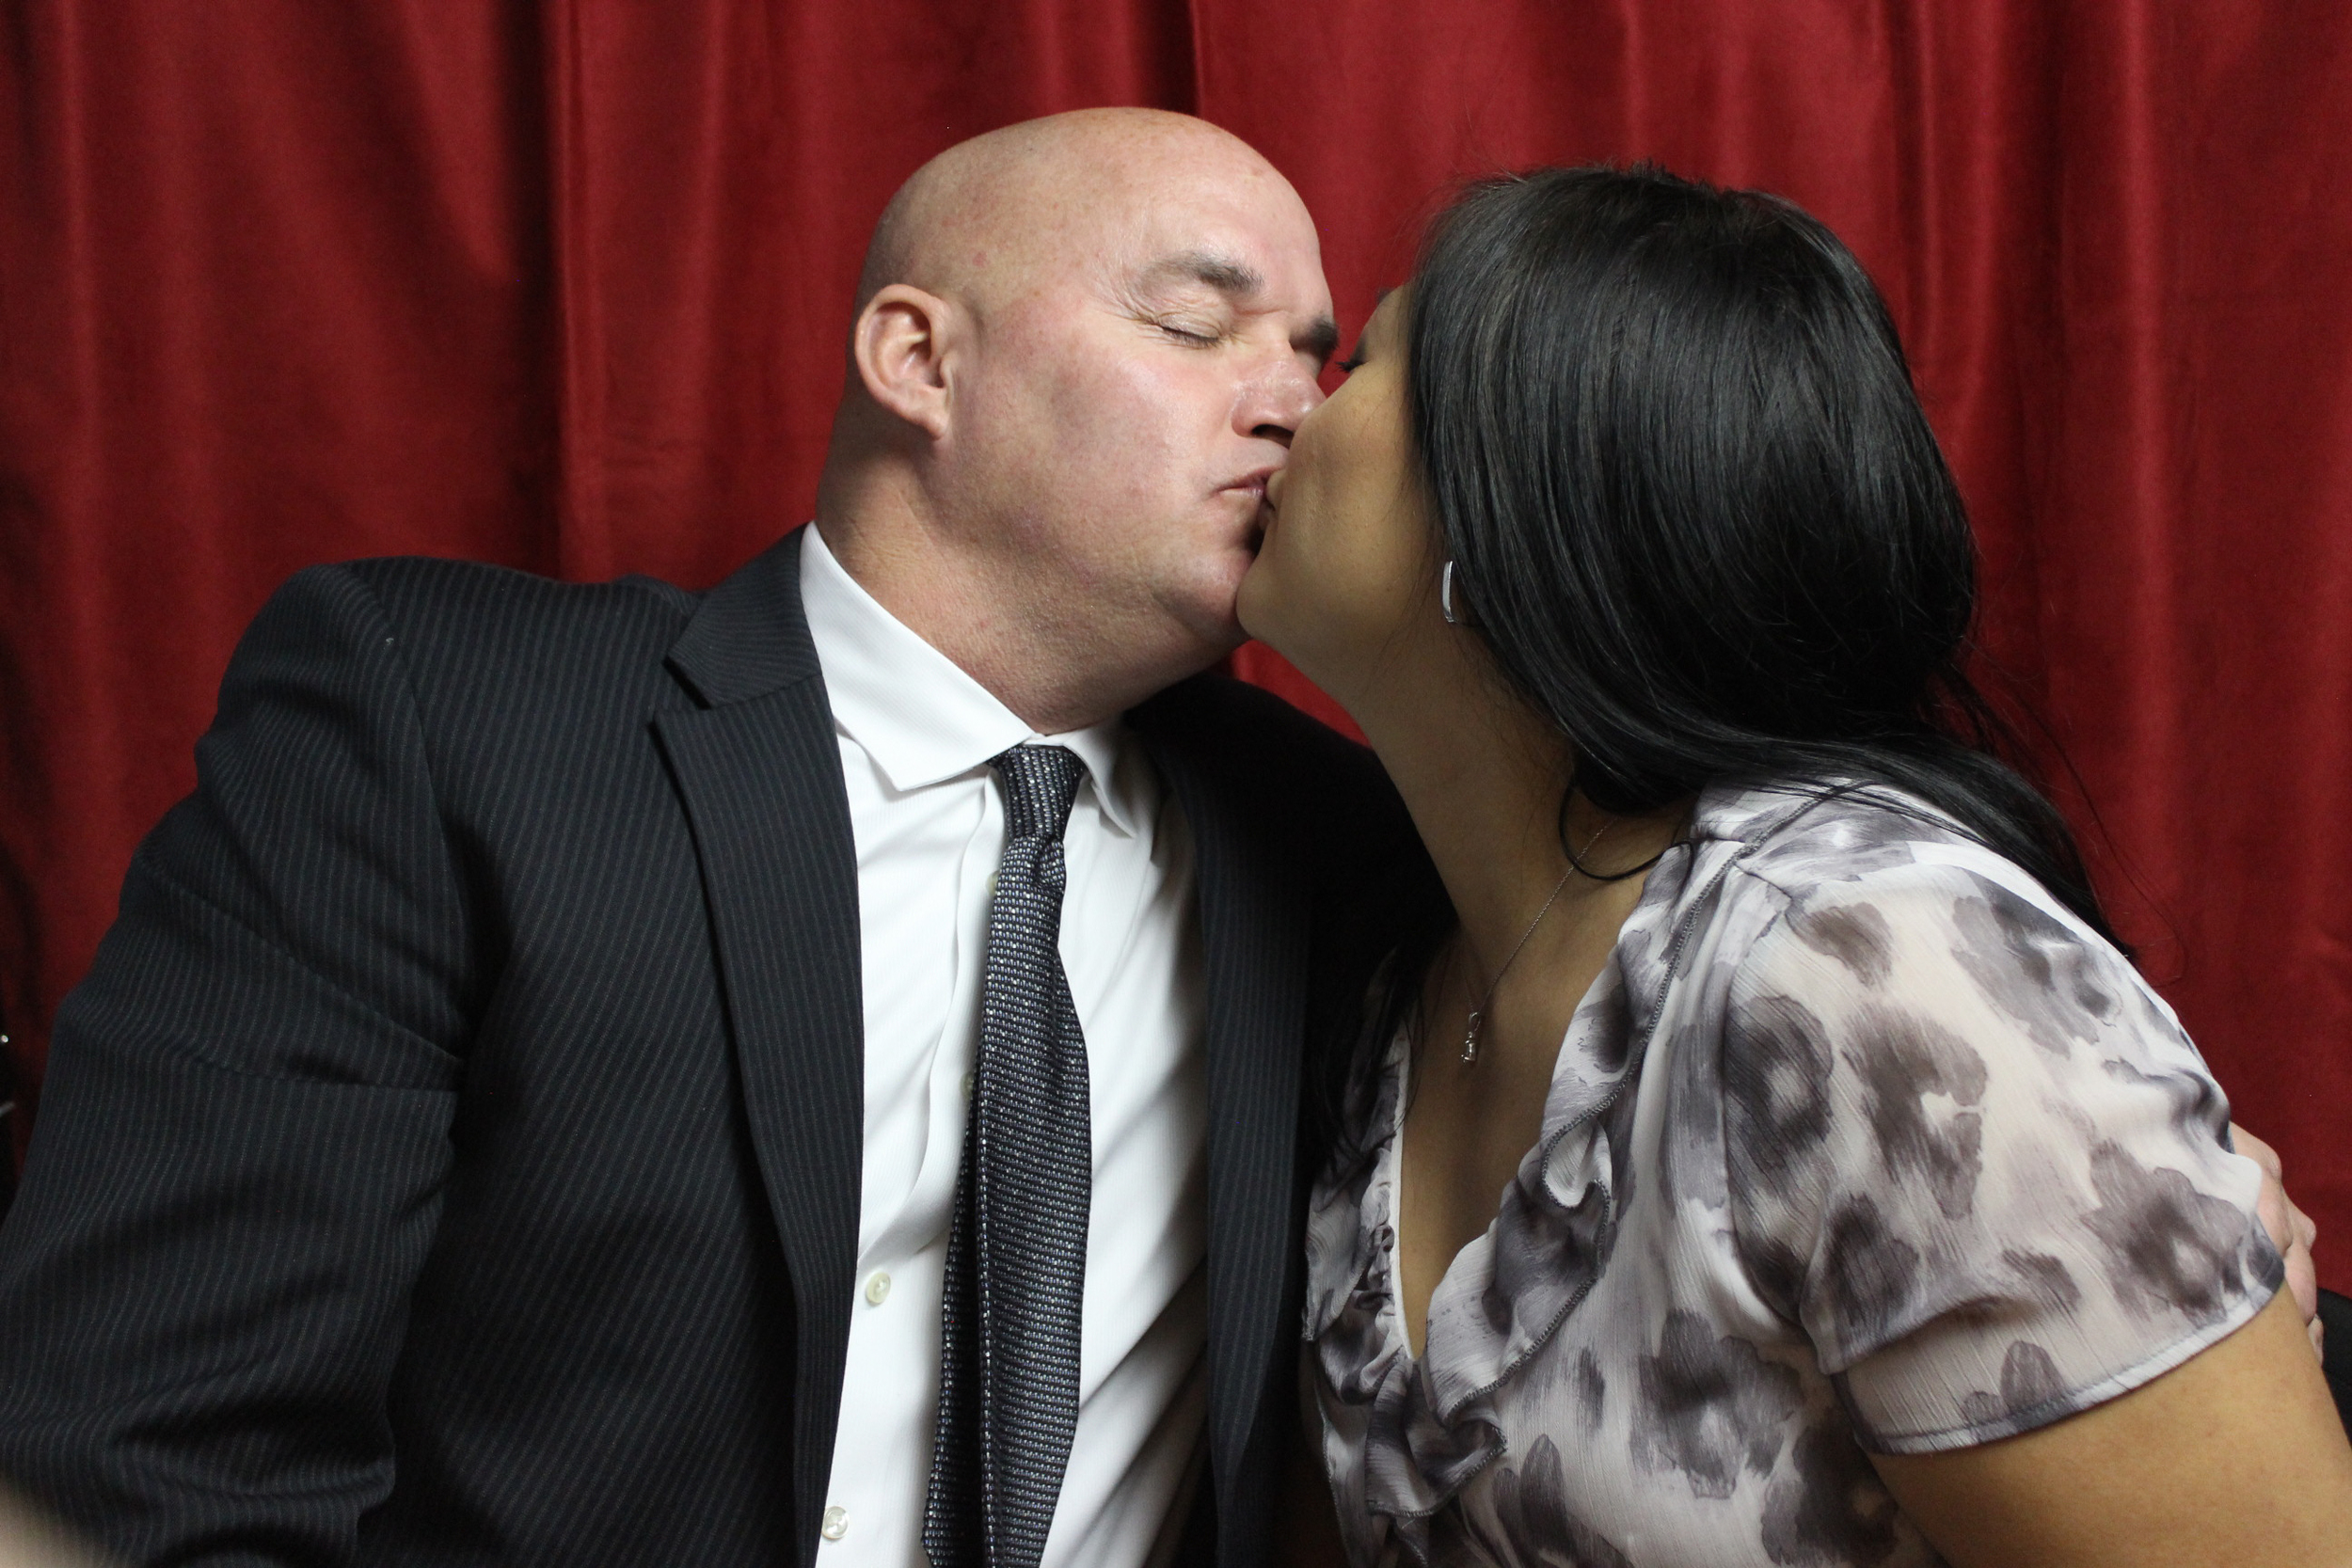 Ann-Marie & Maurice Photo Booth Wedding (139).jpg